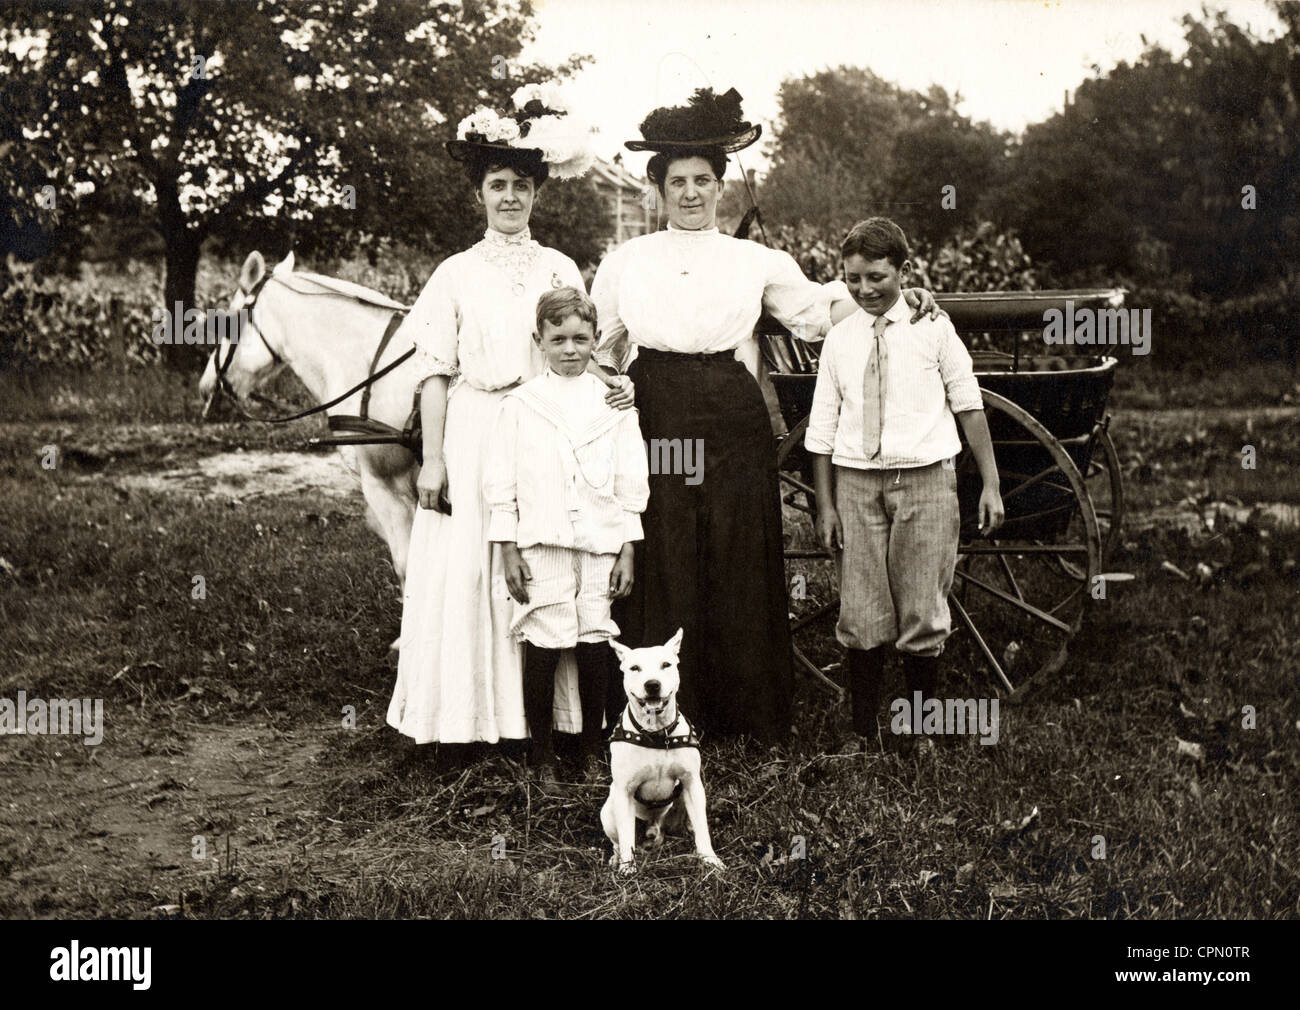 Family of Four Guarded by Pitbull Dog - Stock Image